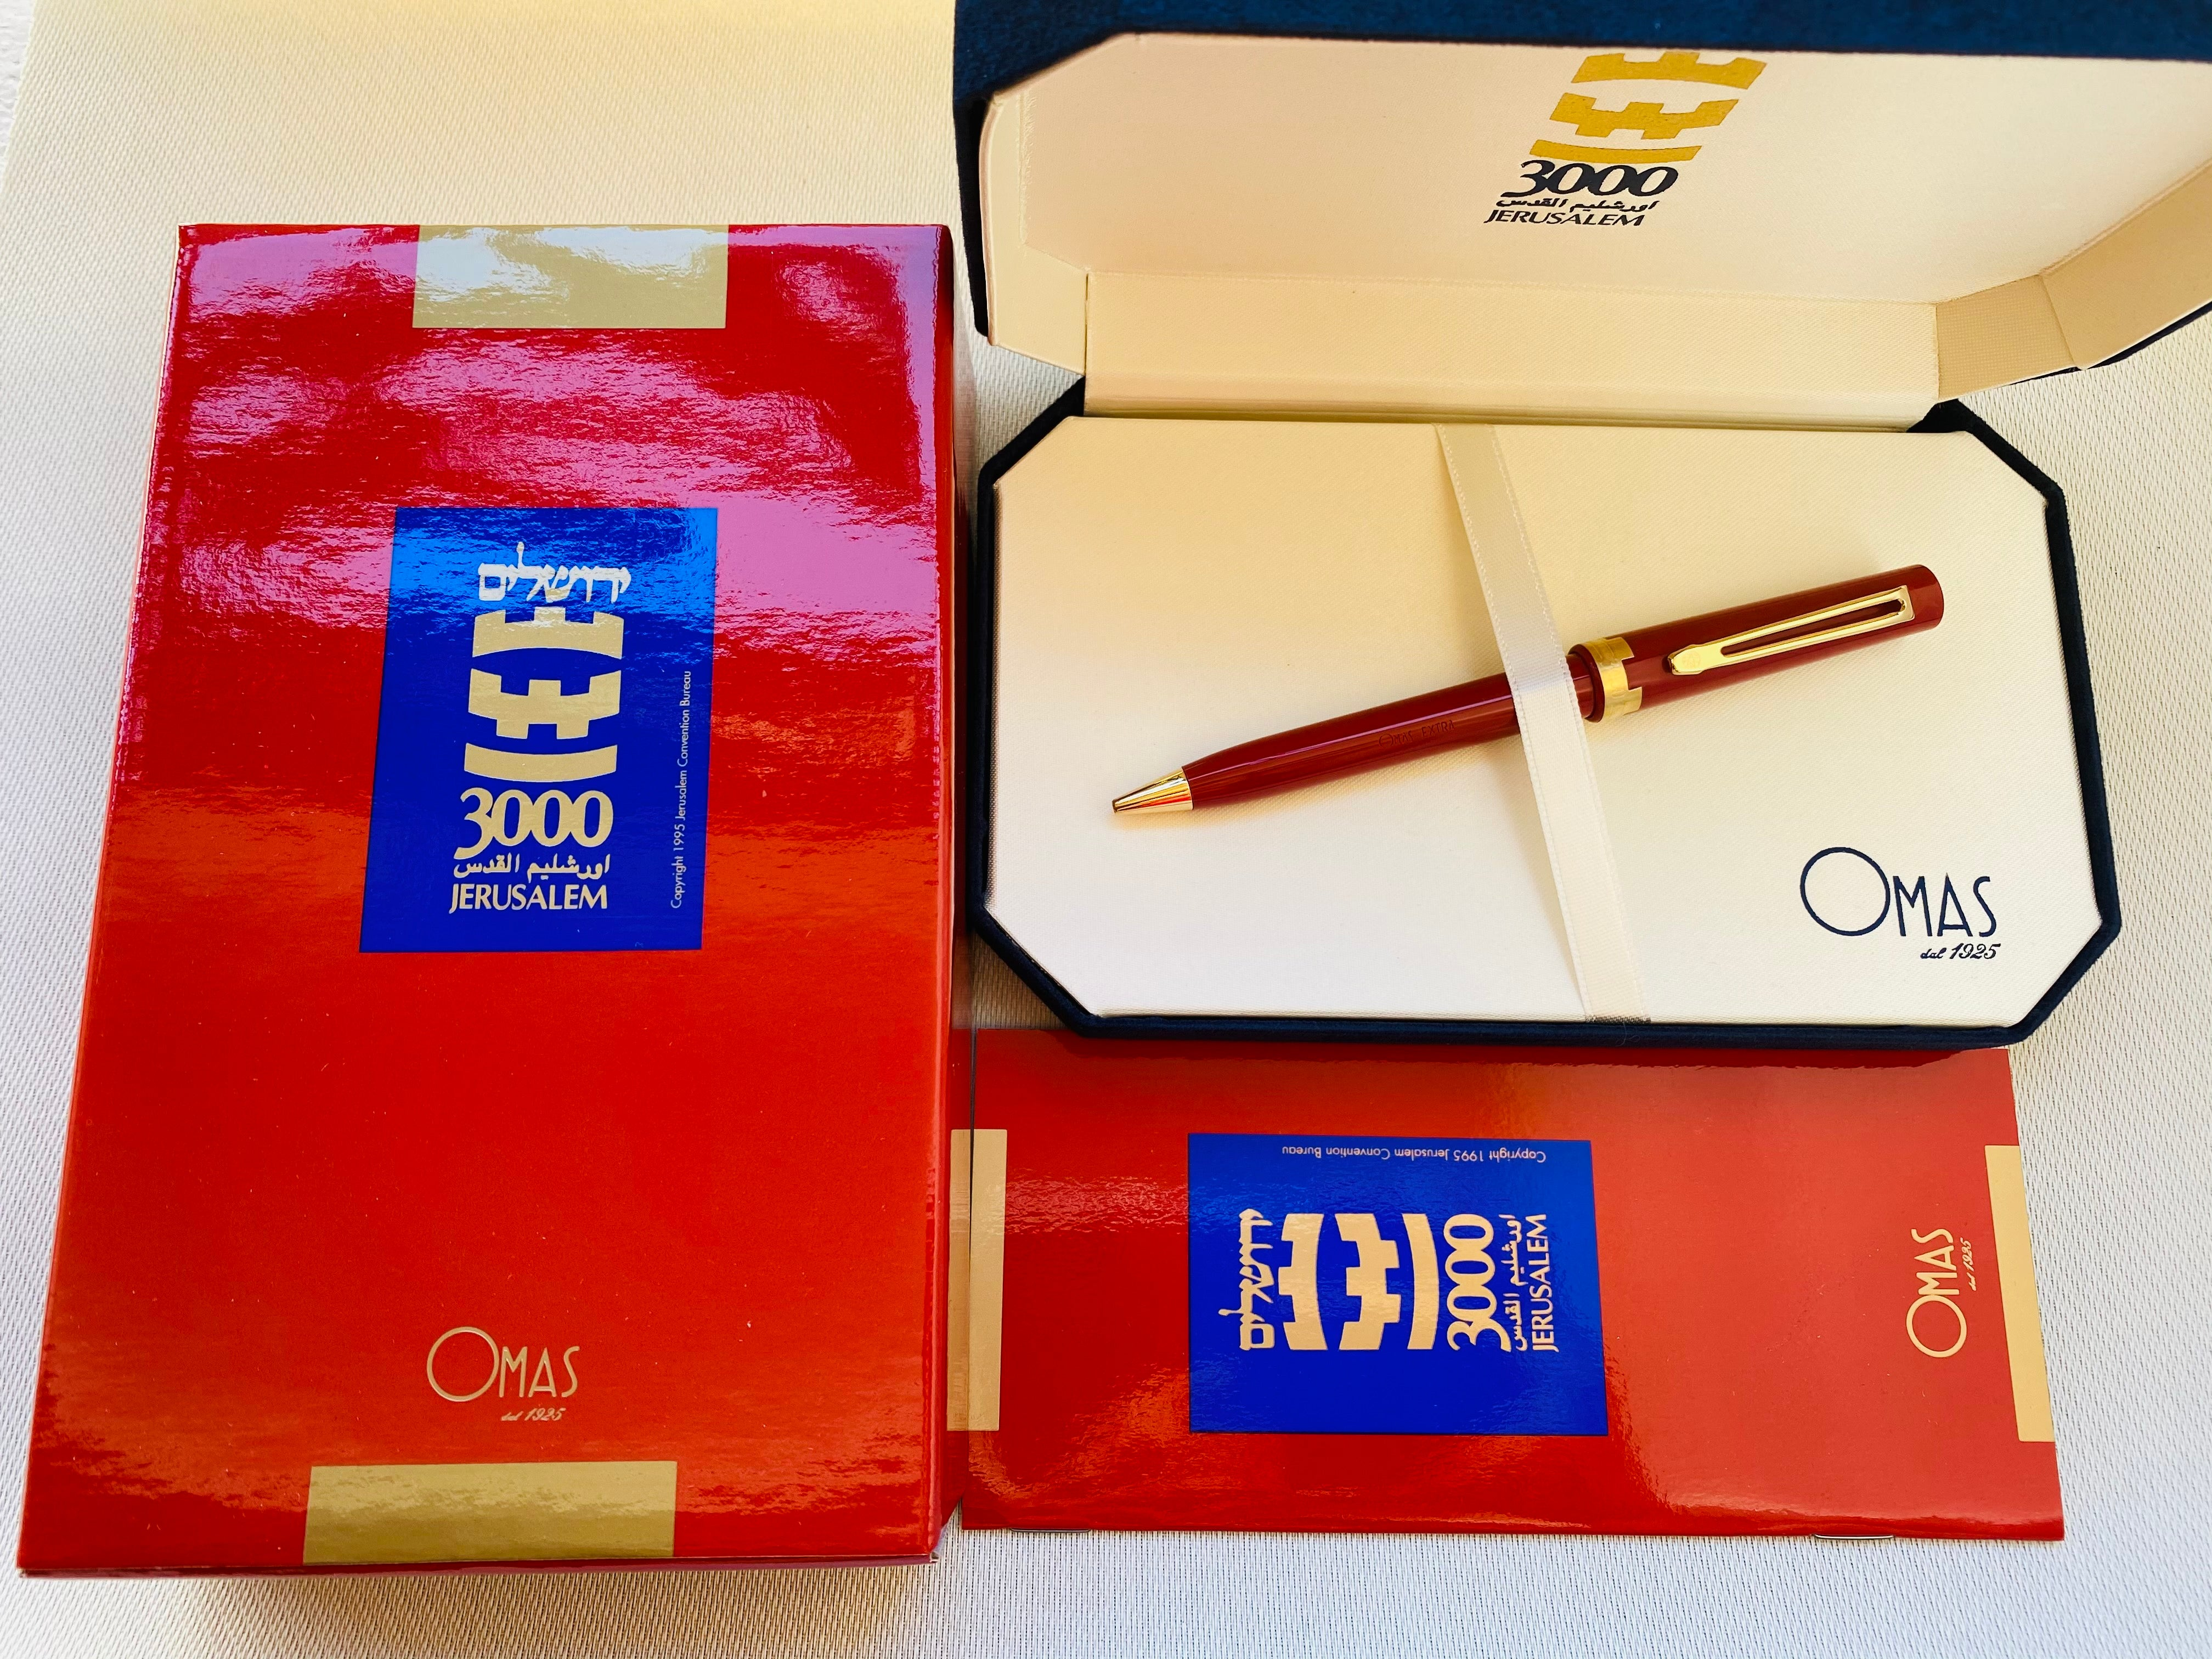 Omas JERUSALEM 3000 RED Ball Point w/Case, NOS, 90´s, Italy